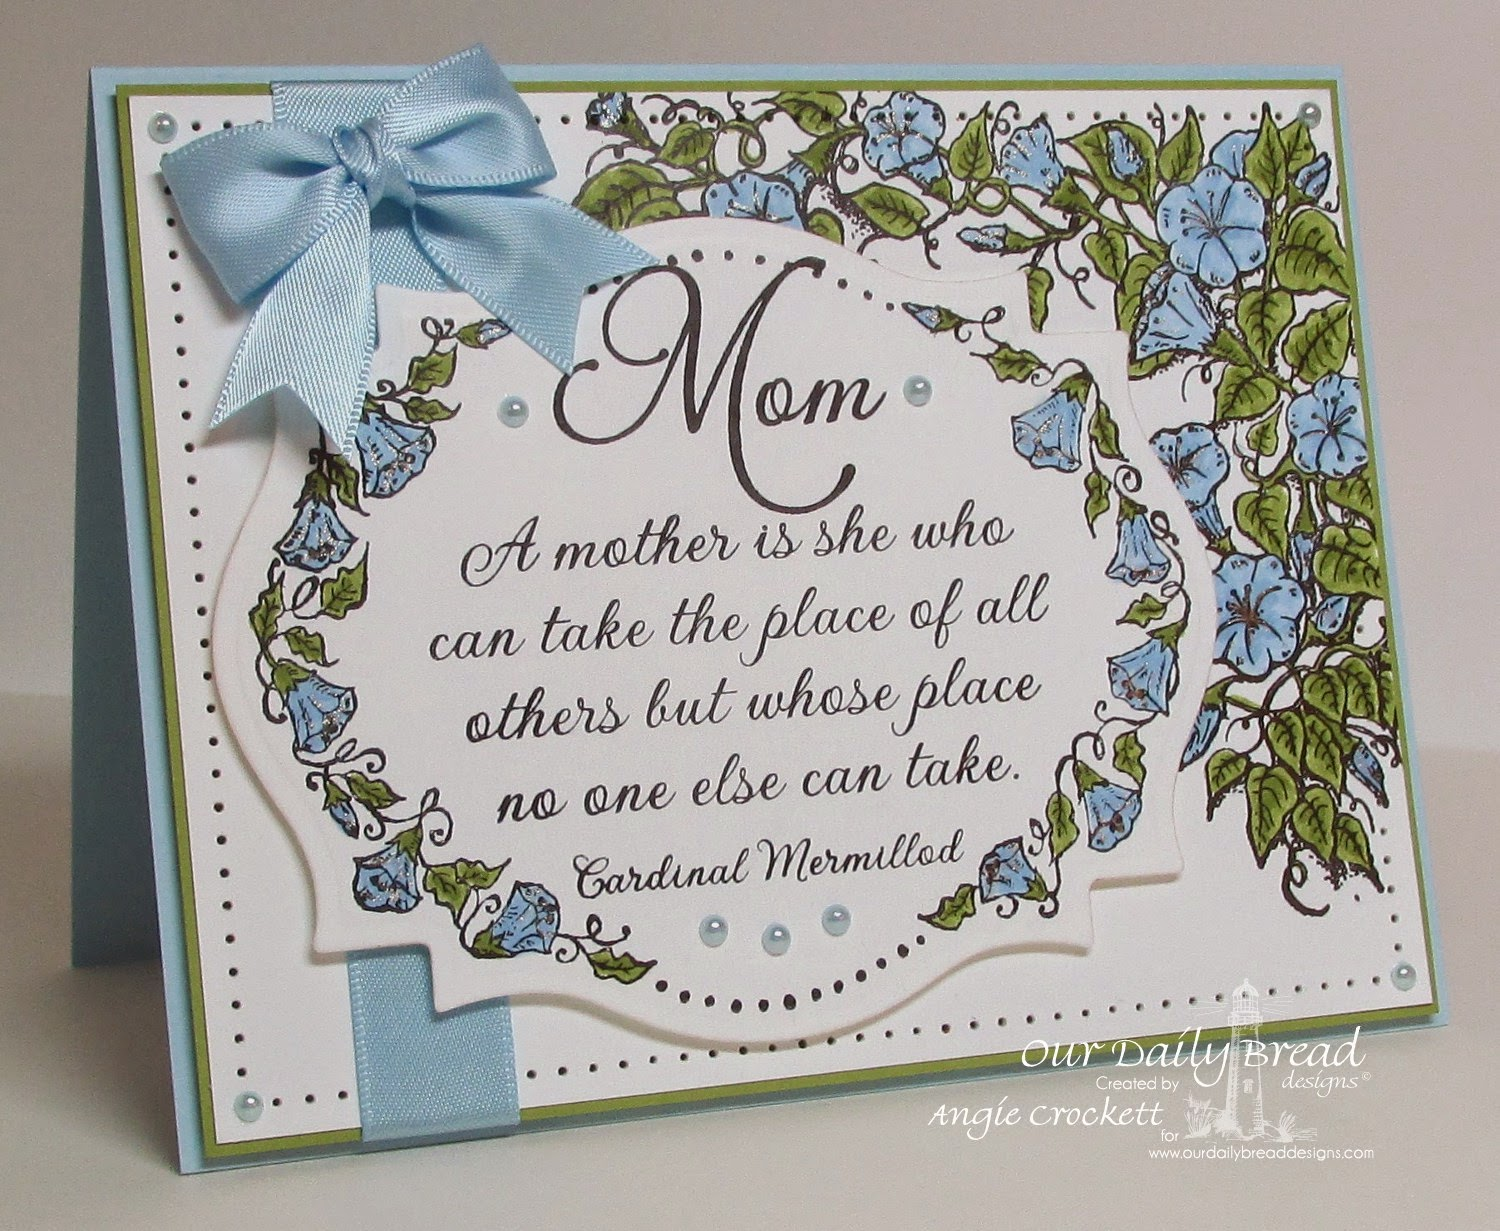 ODBD Glory, Floral Frame, Mom, Card Designer Angie Crockett